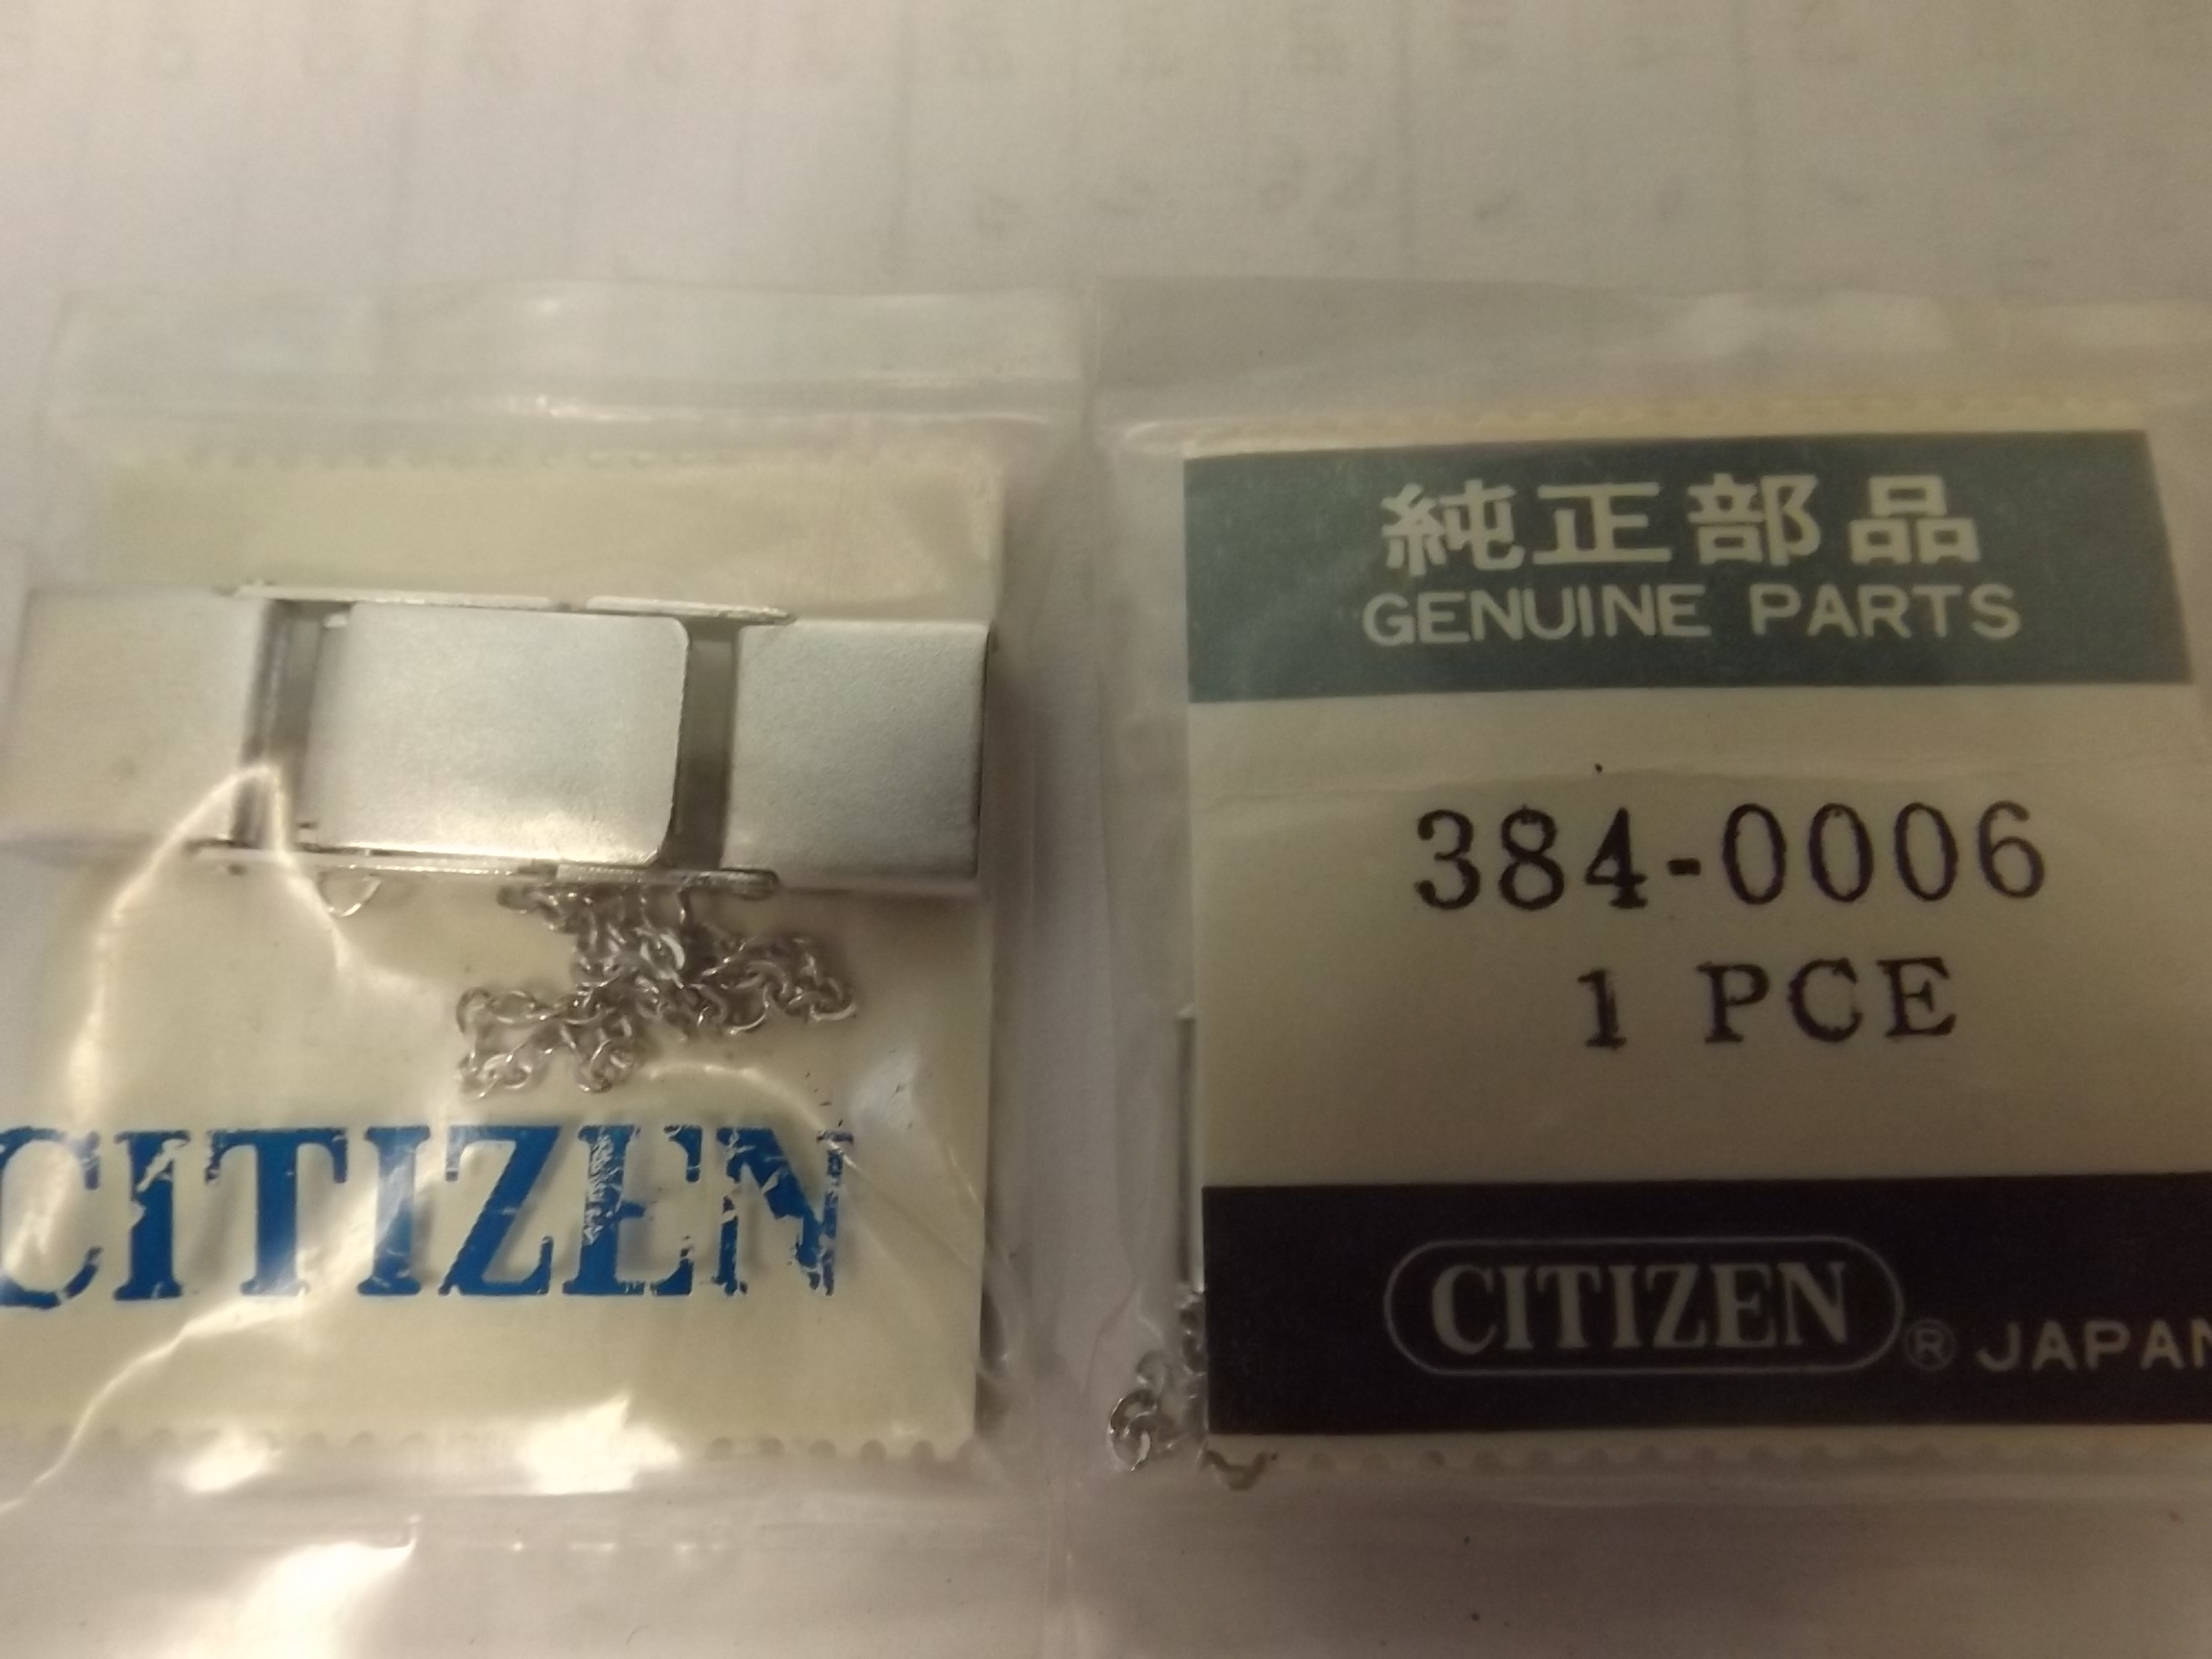 384-0006 Citizen Fold Over Style Clasp with Safety Chain- White-9mm